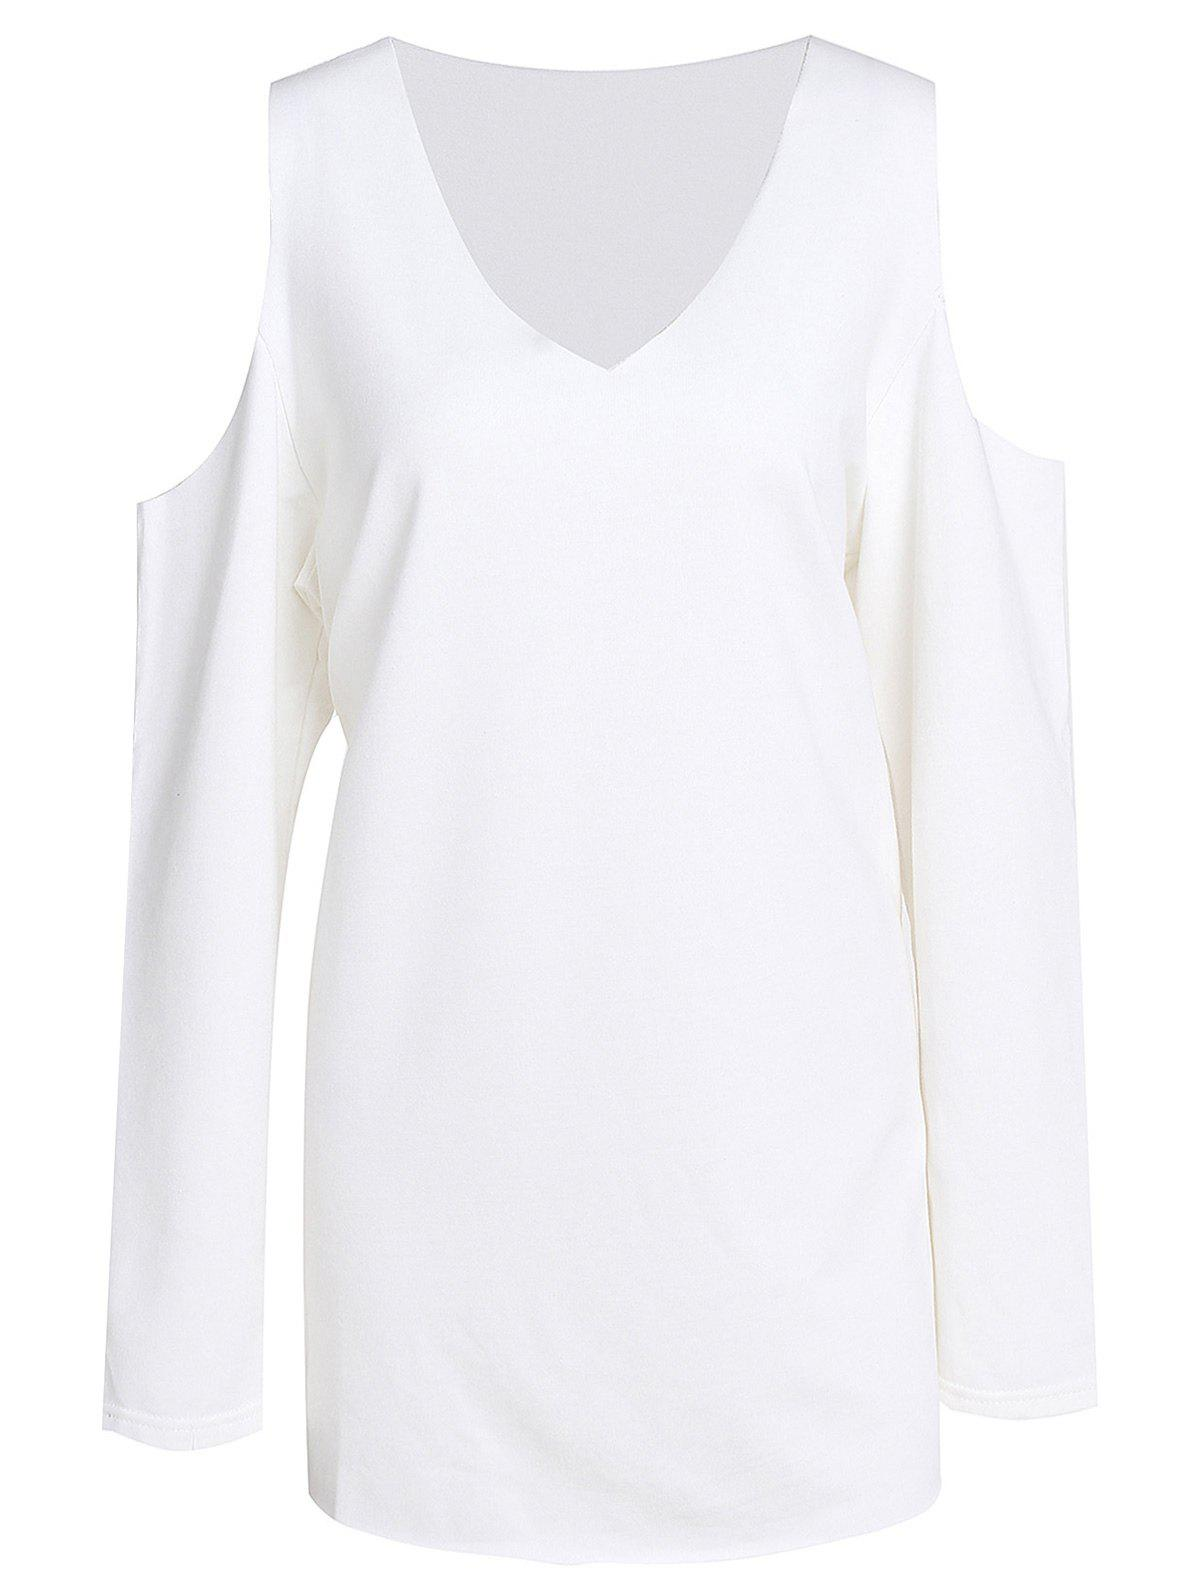 Hot Sweet V-Neck White Long Sleeve Sweatshirt For Women